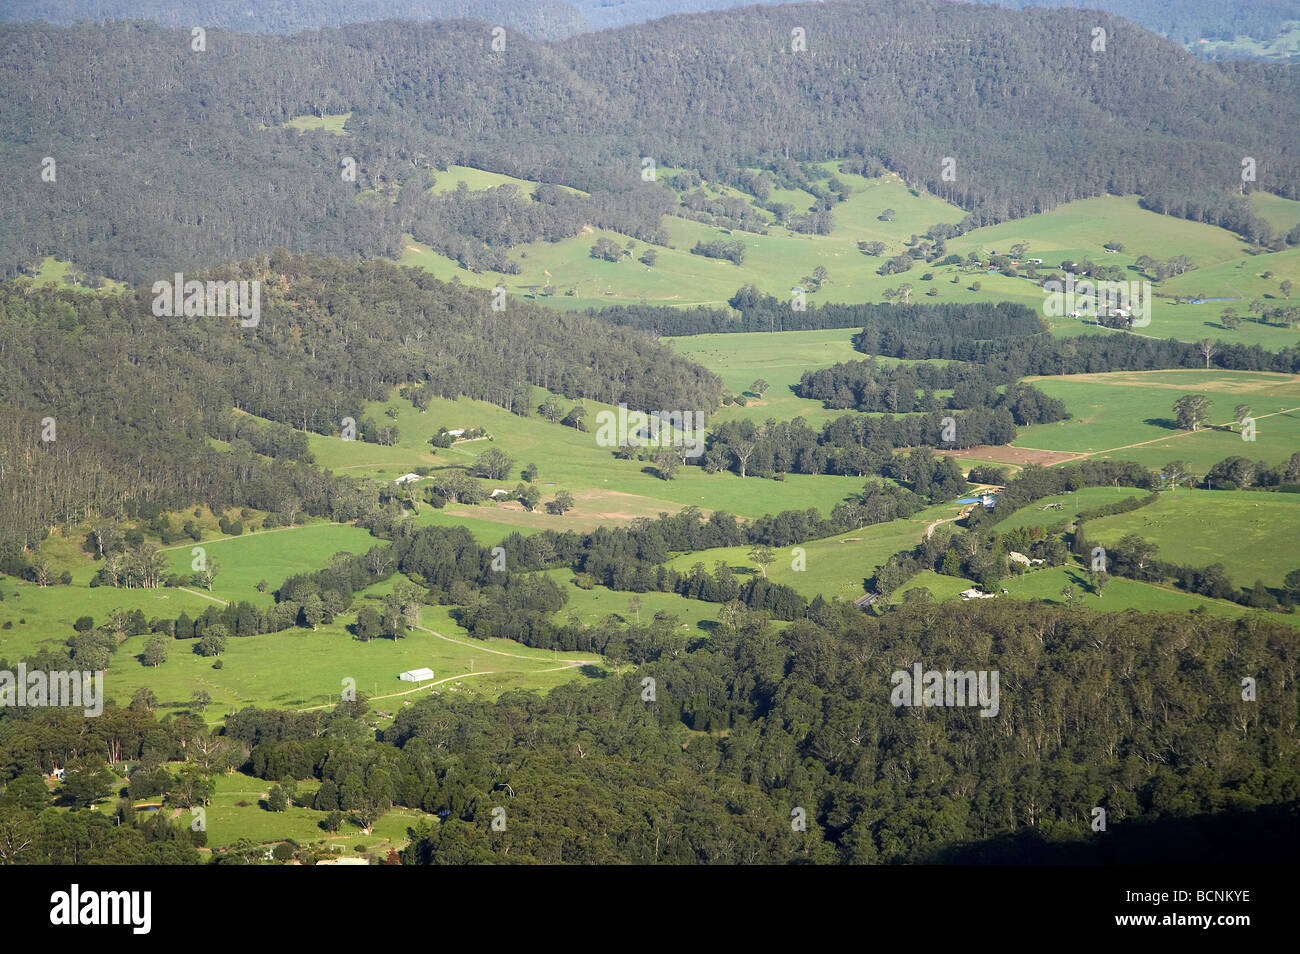 My Southern Highlands View Over Kangaroo Valley From